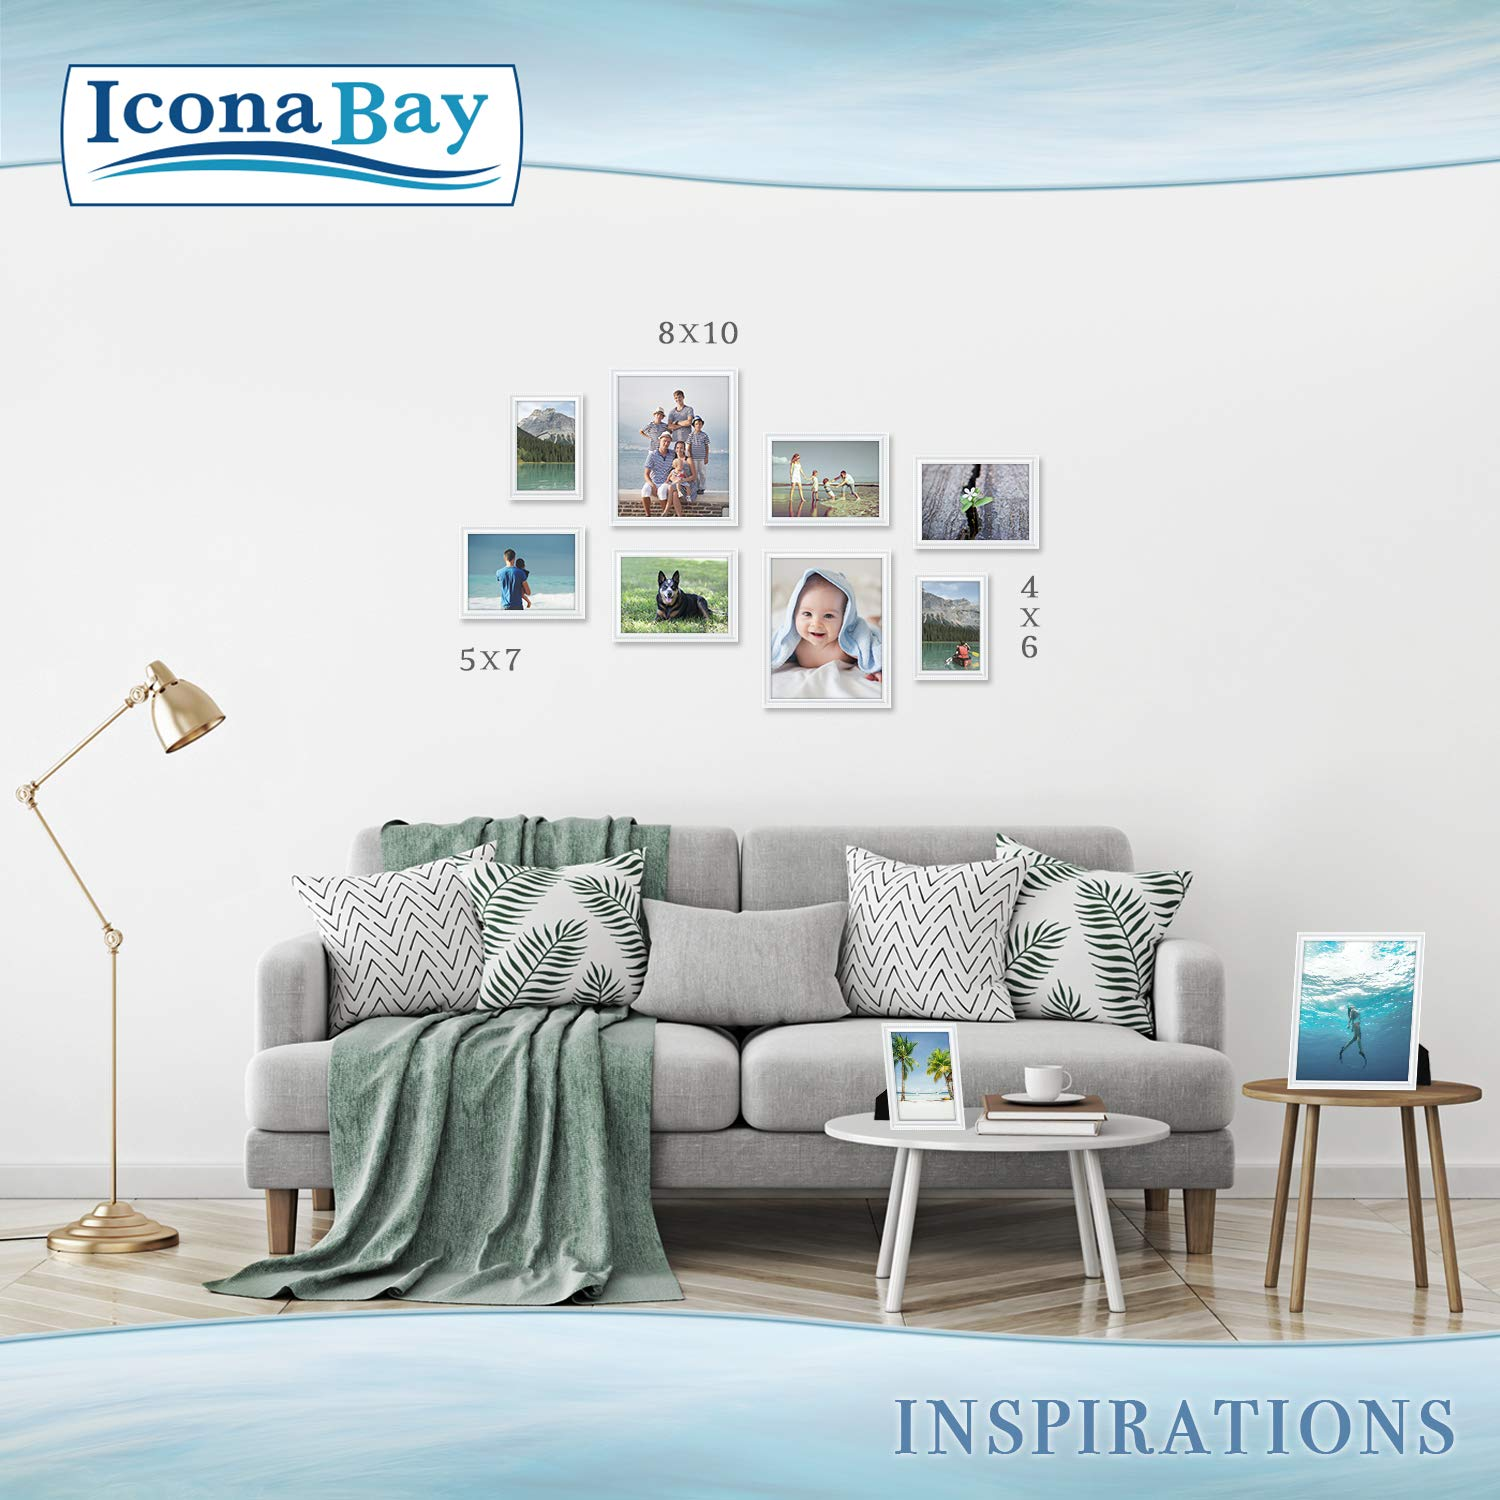 Icona Bay 8x10 Picture Frames (6 Pack, White) Picture Frame Set, Wall Mount or Table Top, Set of 6 Inspirations Collection by Icona Bay (Image #8)